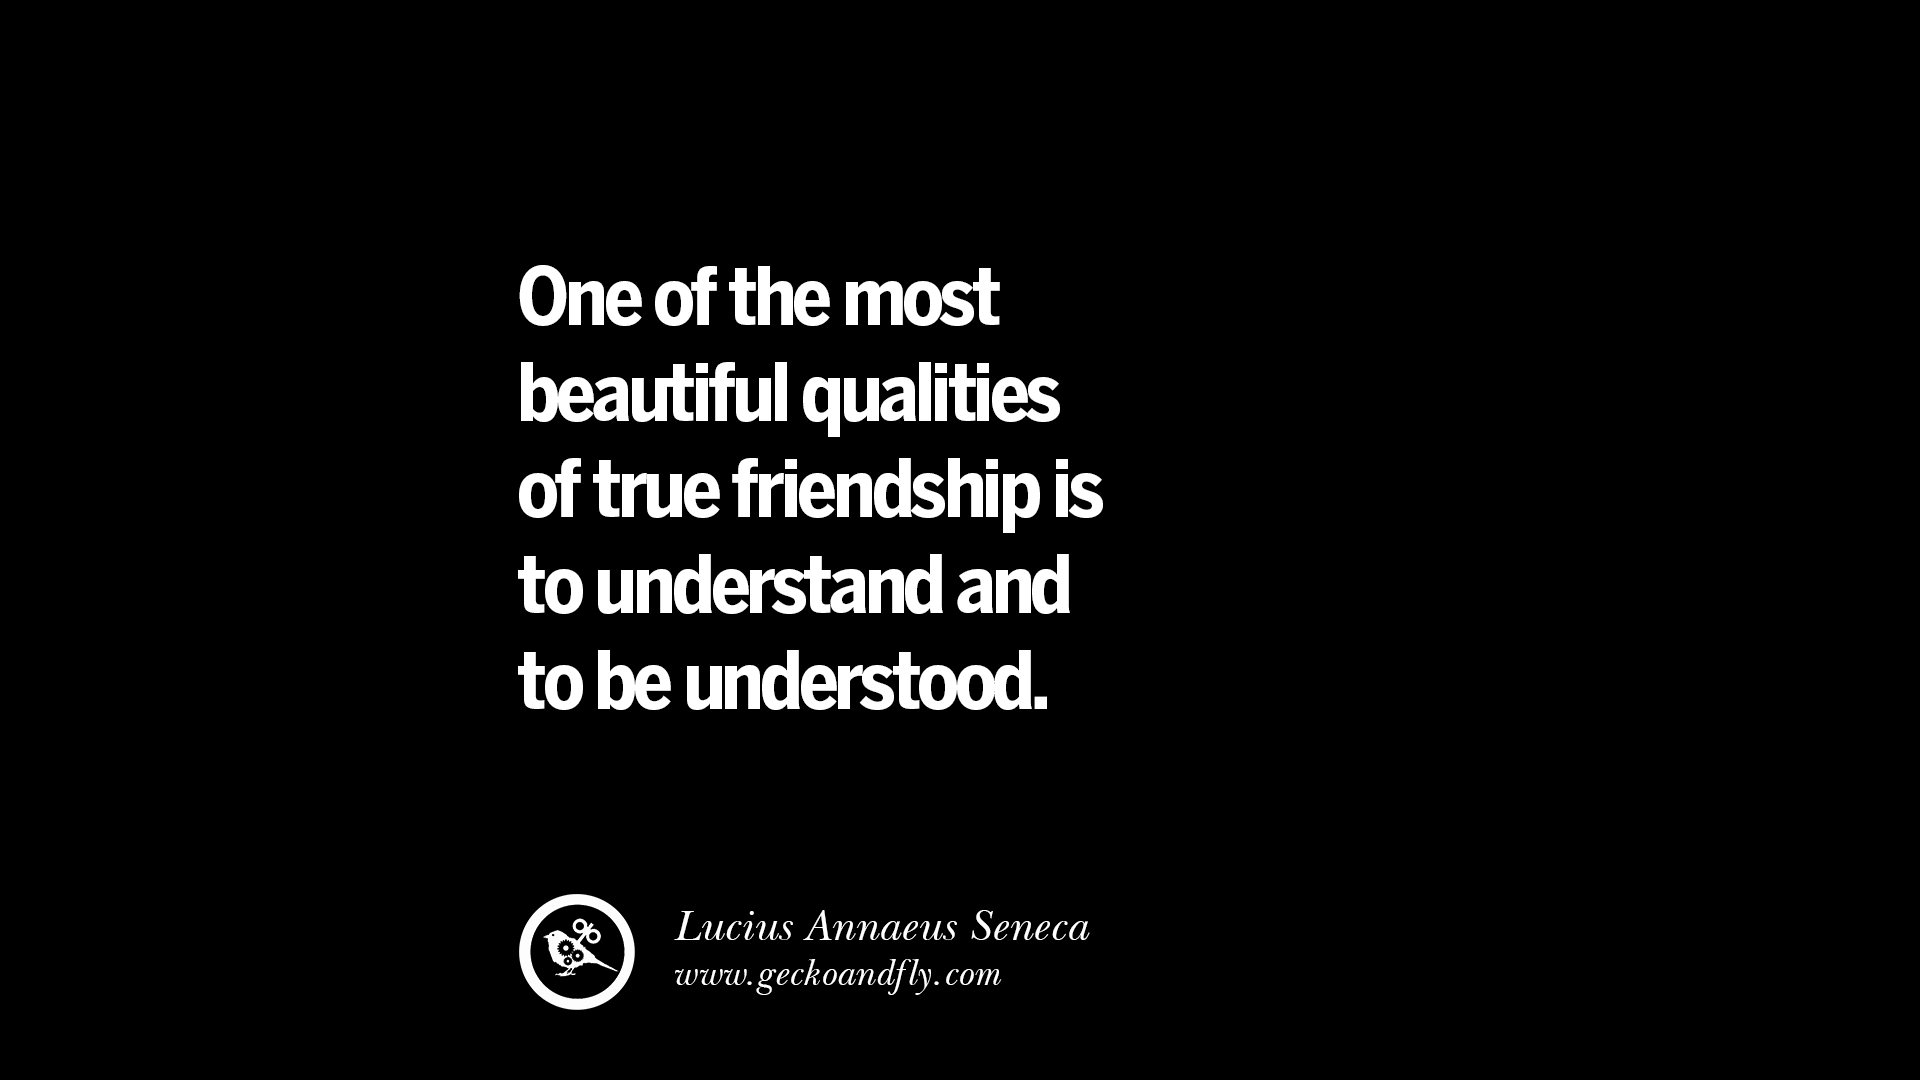 Good Quotes About Love And Friendship Unique 20 Amazing Quotes About Friendship Love And Friends  Geckoandfly 2018